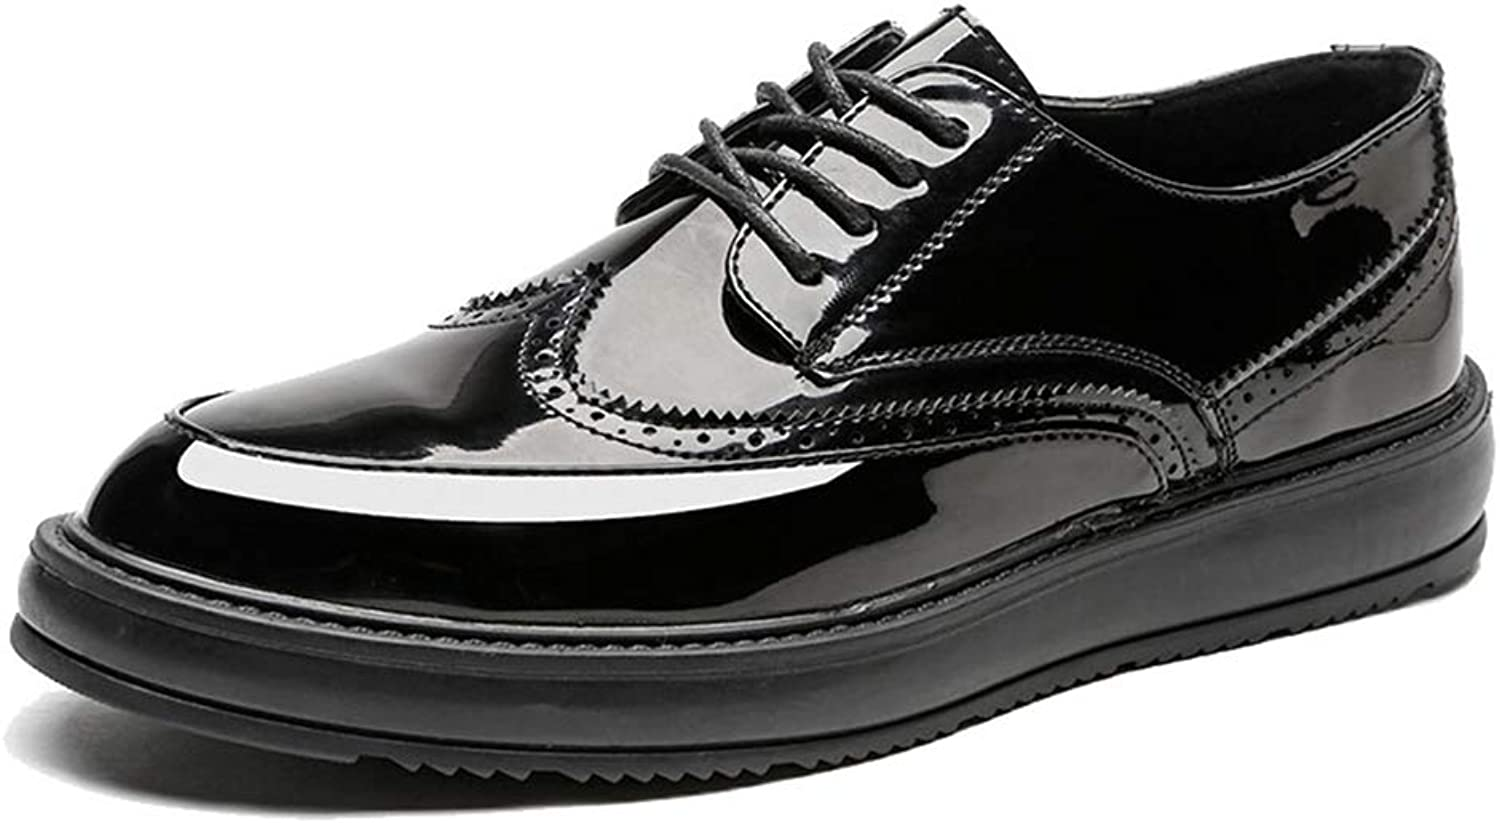 JUJIANFU-shoes Men's Simple Fashion Oxford Casual Classic Carvings Breathe Comfortably Outsole Brogue shoes(Patent Leather Optional)